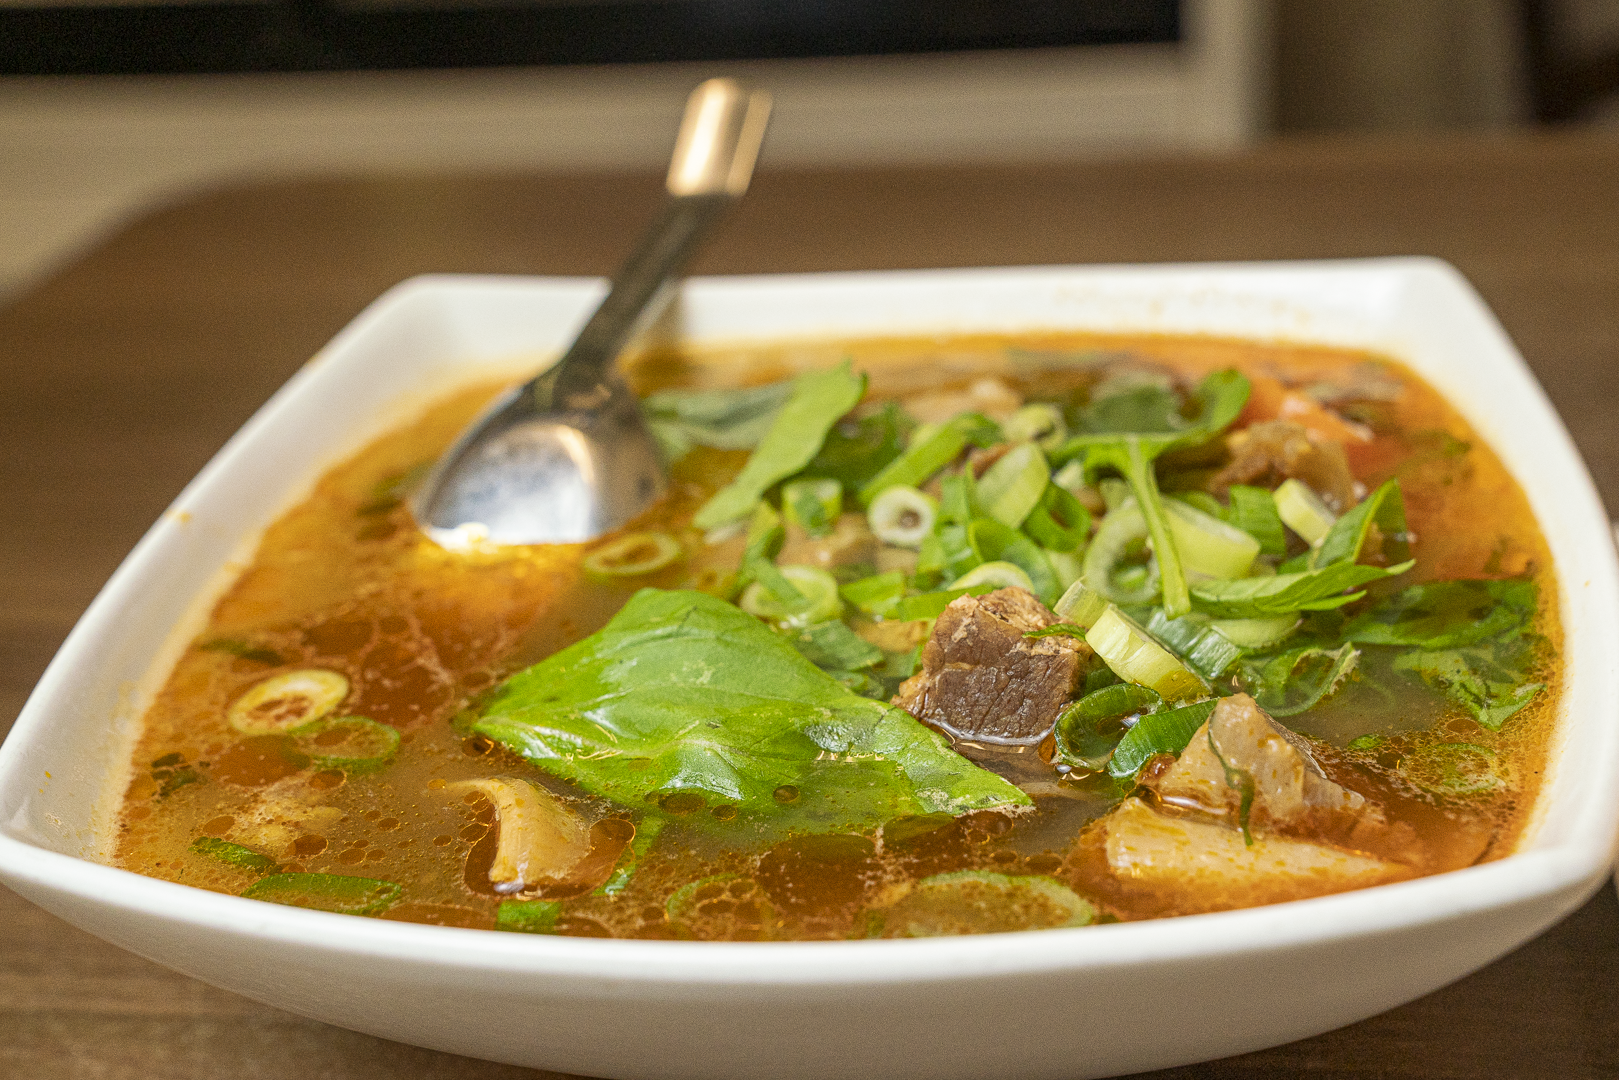 Bò kho (Beef stew with bread or noodle)